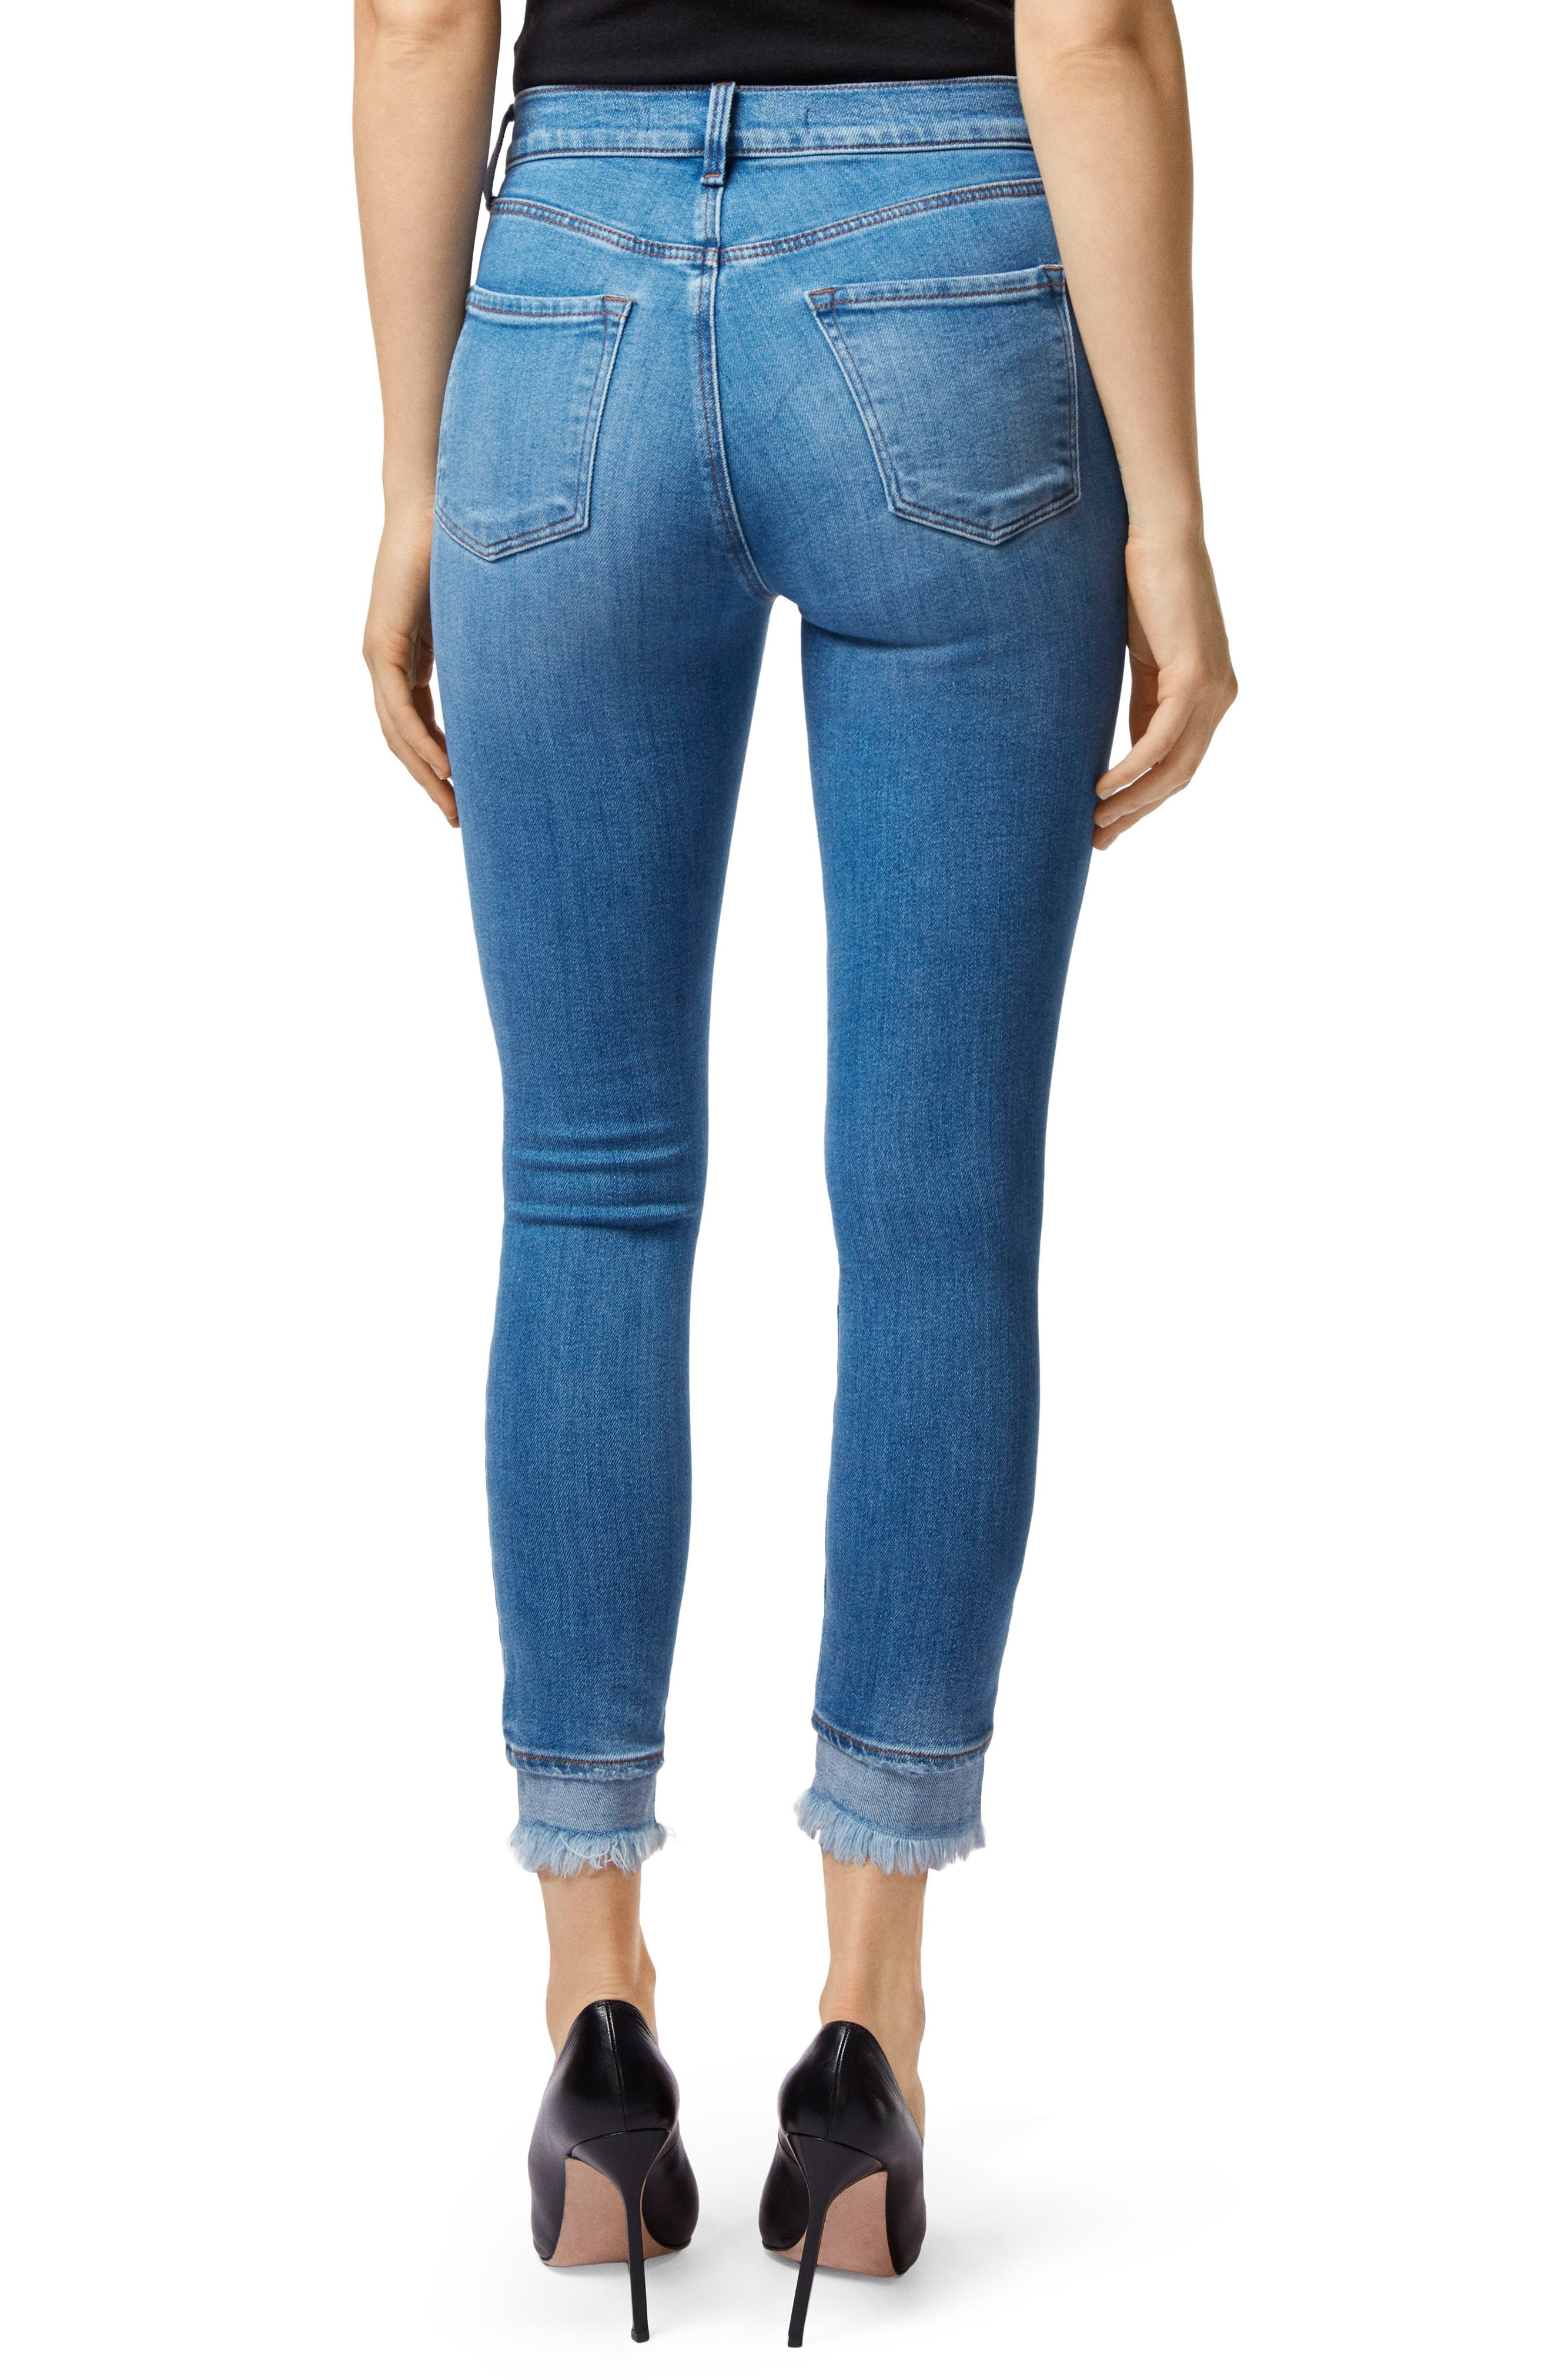 Alana Frayed High Waist Ankle Skinny Jeans,                             Alternate thumbnail 2, color,                             453